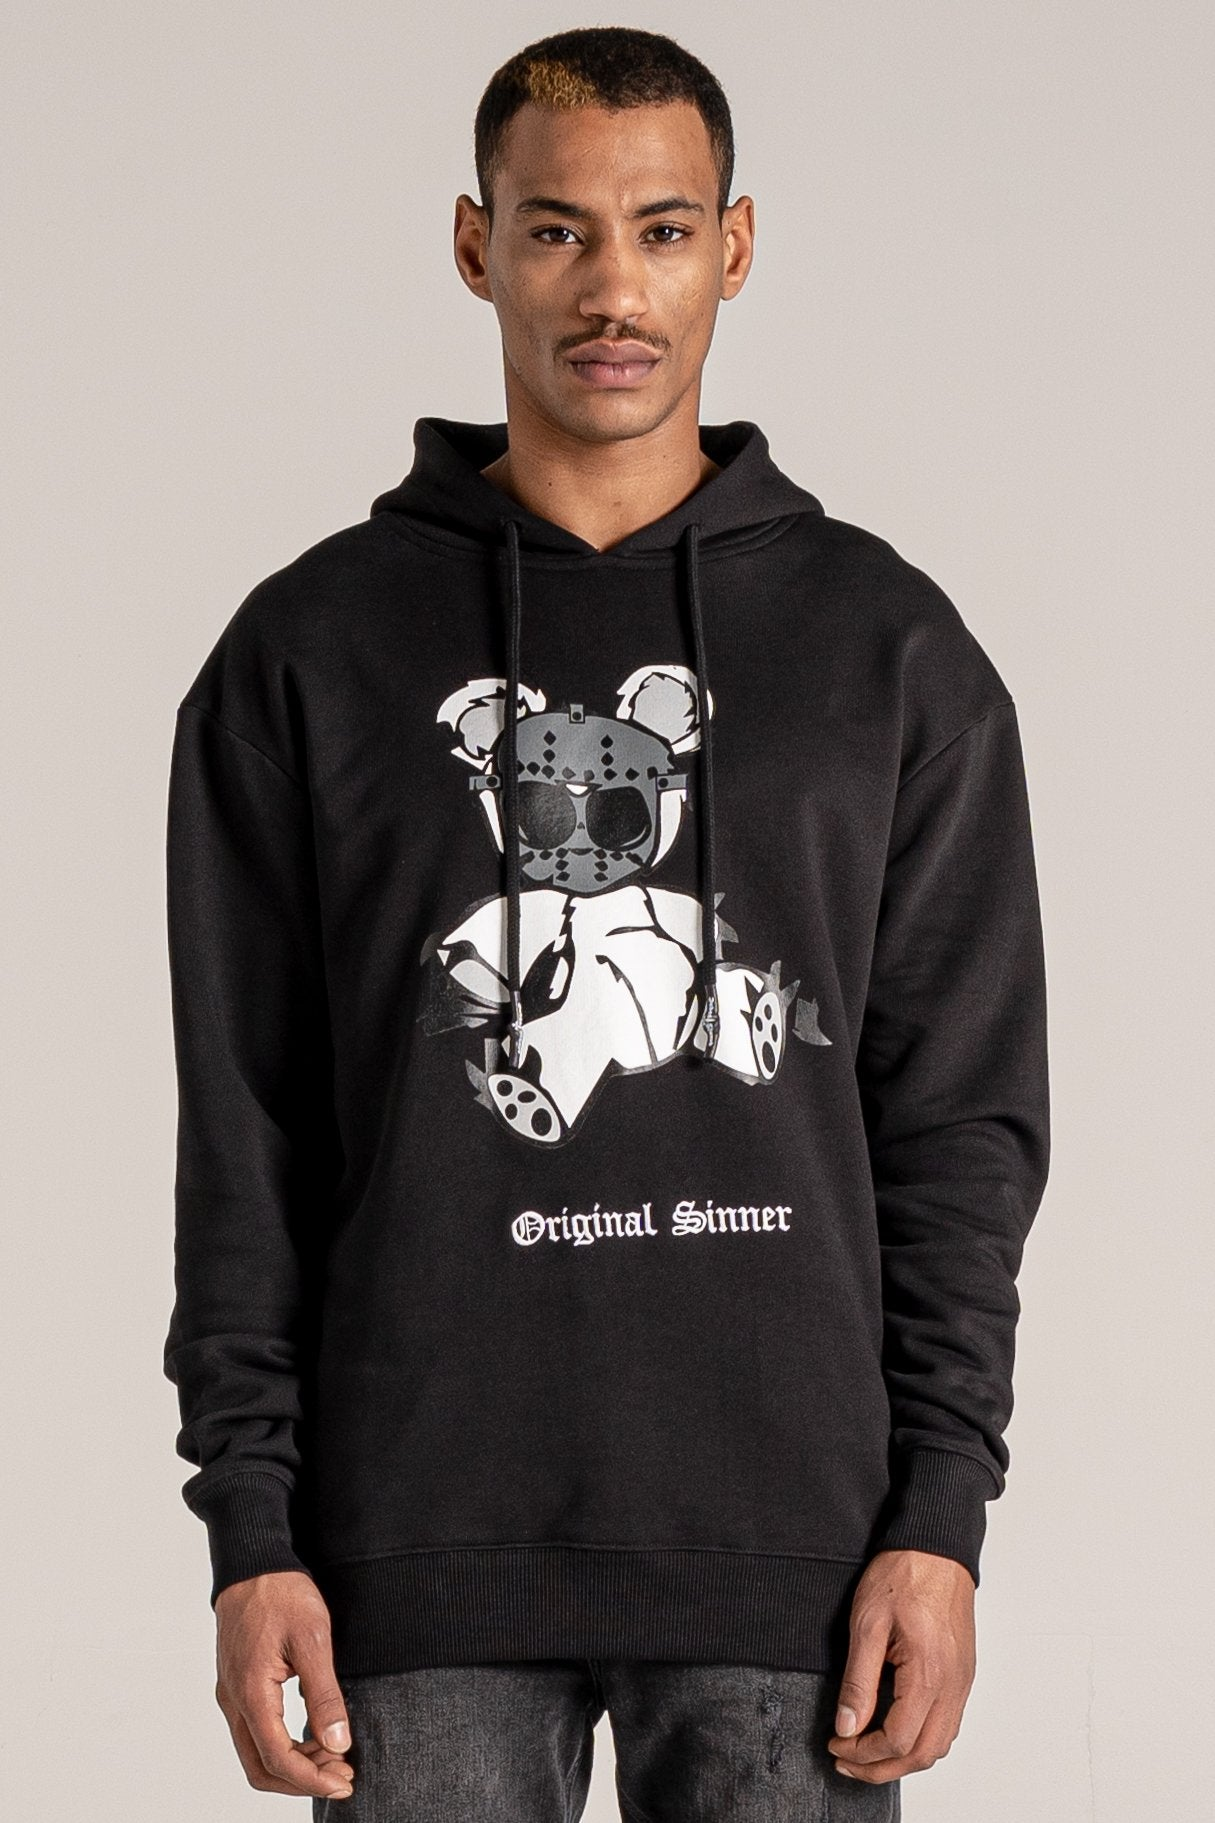 Judas Sinned Bear Print Printed Men's Hoodie - Black - Judas Sinned Clothing